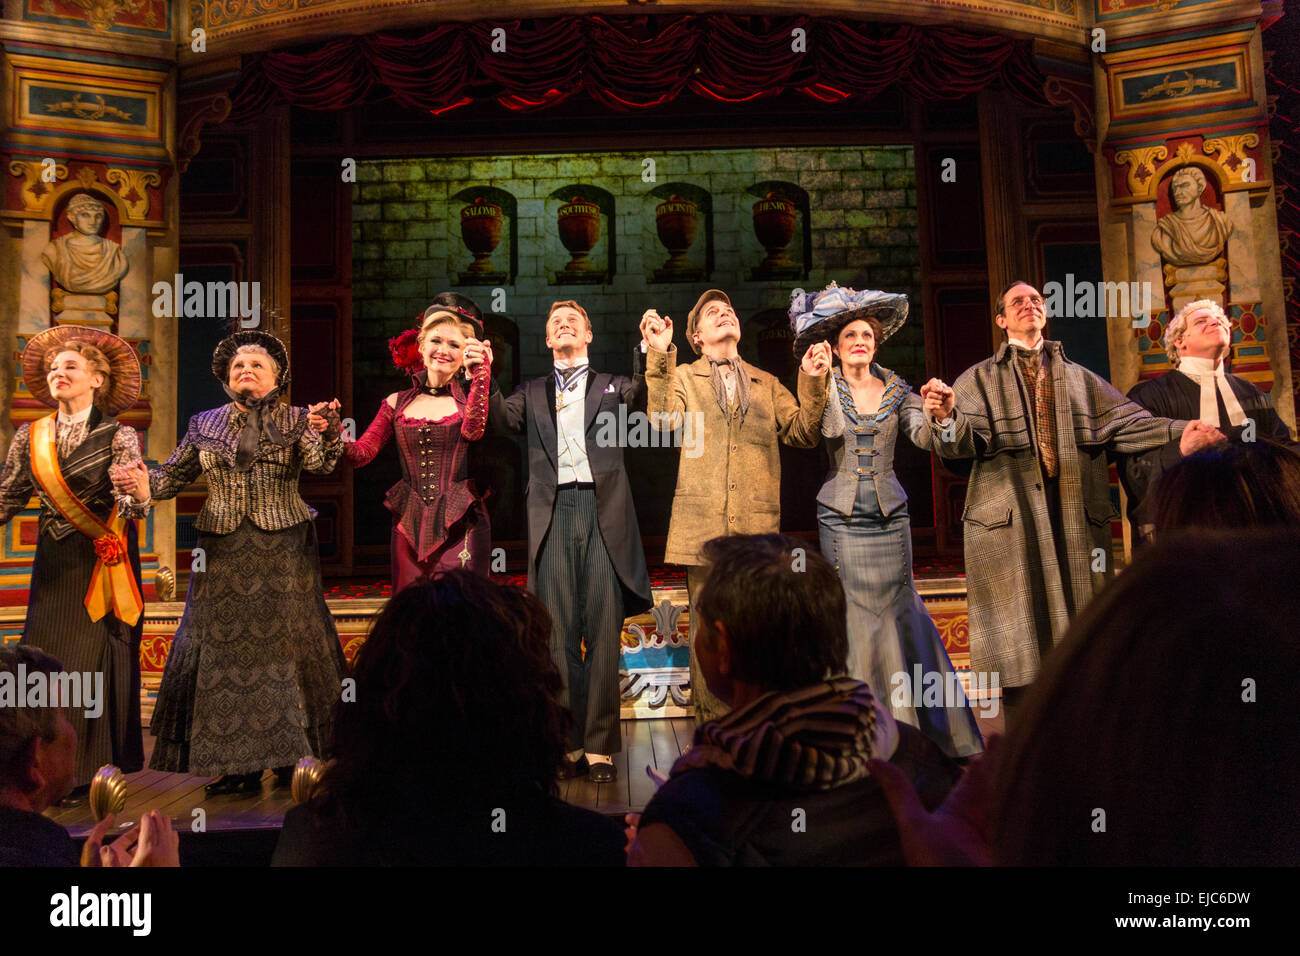 curtain call, cast of A Gentleman's Guide to Love & Murder, Walter Kerr Theater, Broadway, New York, USA - Stock Image